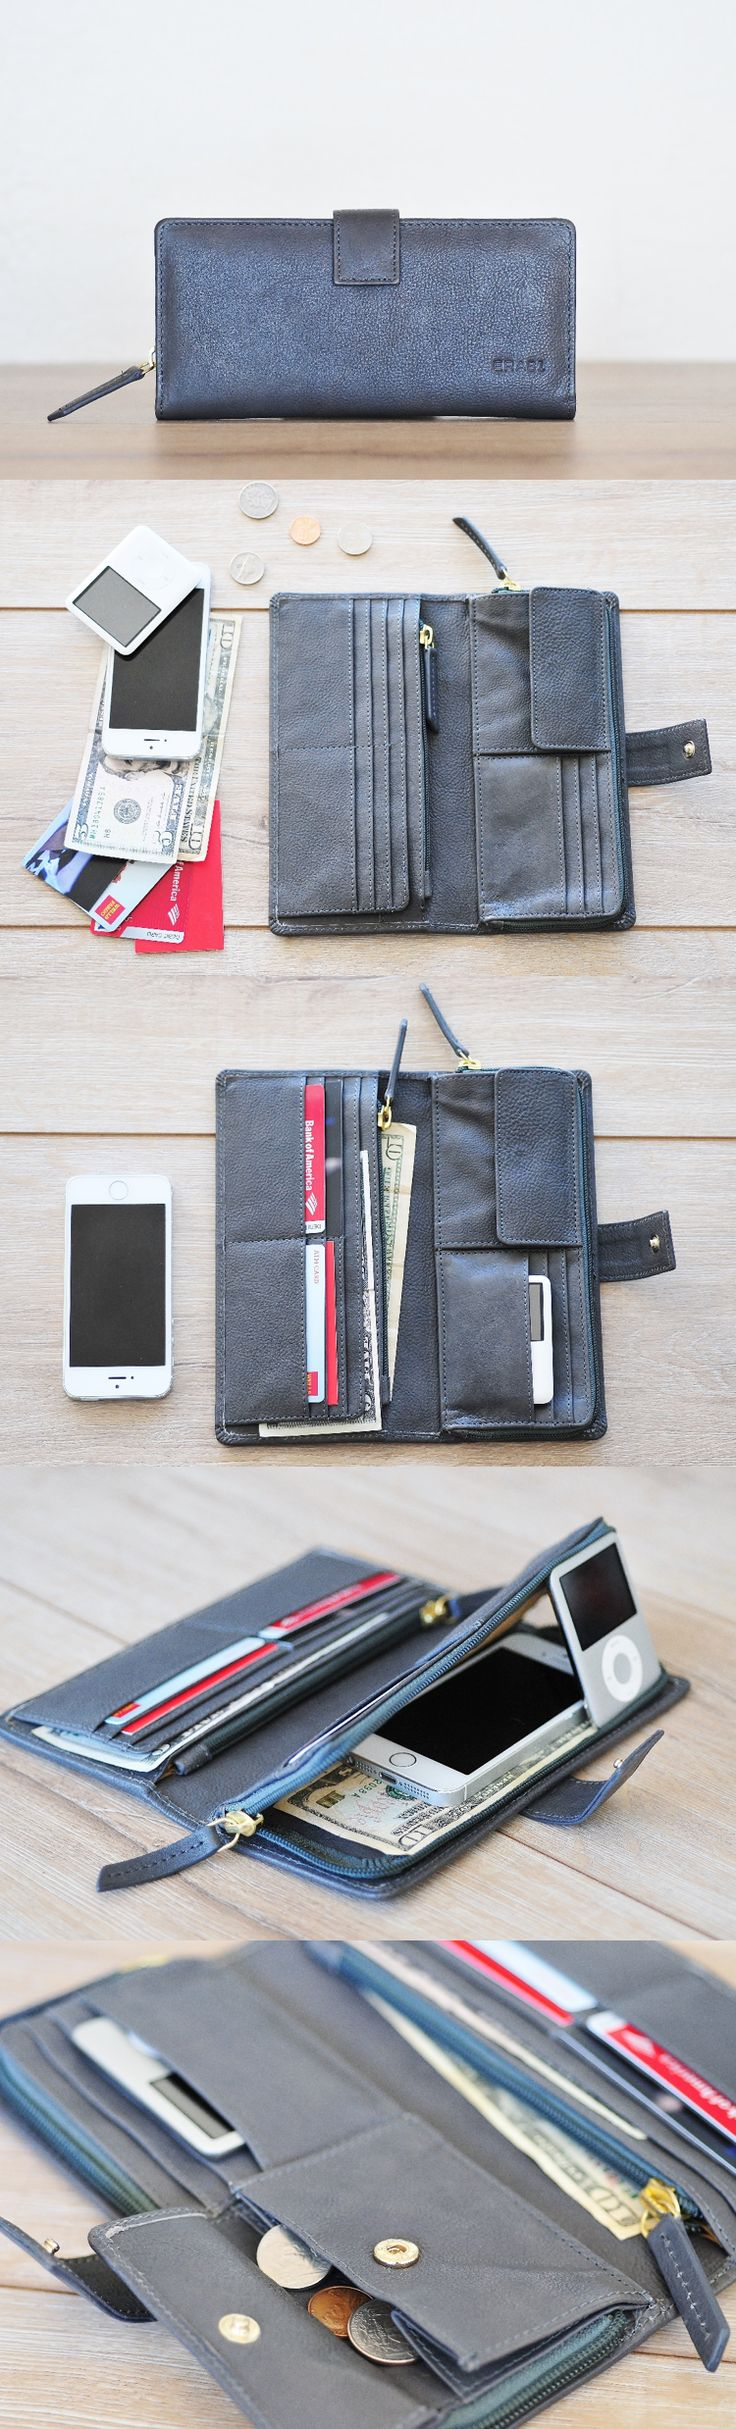 Playful modern leather wallet by #ERA81 with unbeatable functionality - store all your cards, bills, documents and even phone in one minimalist wallet.